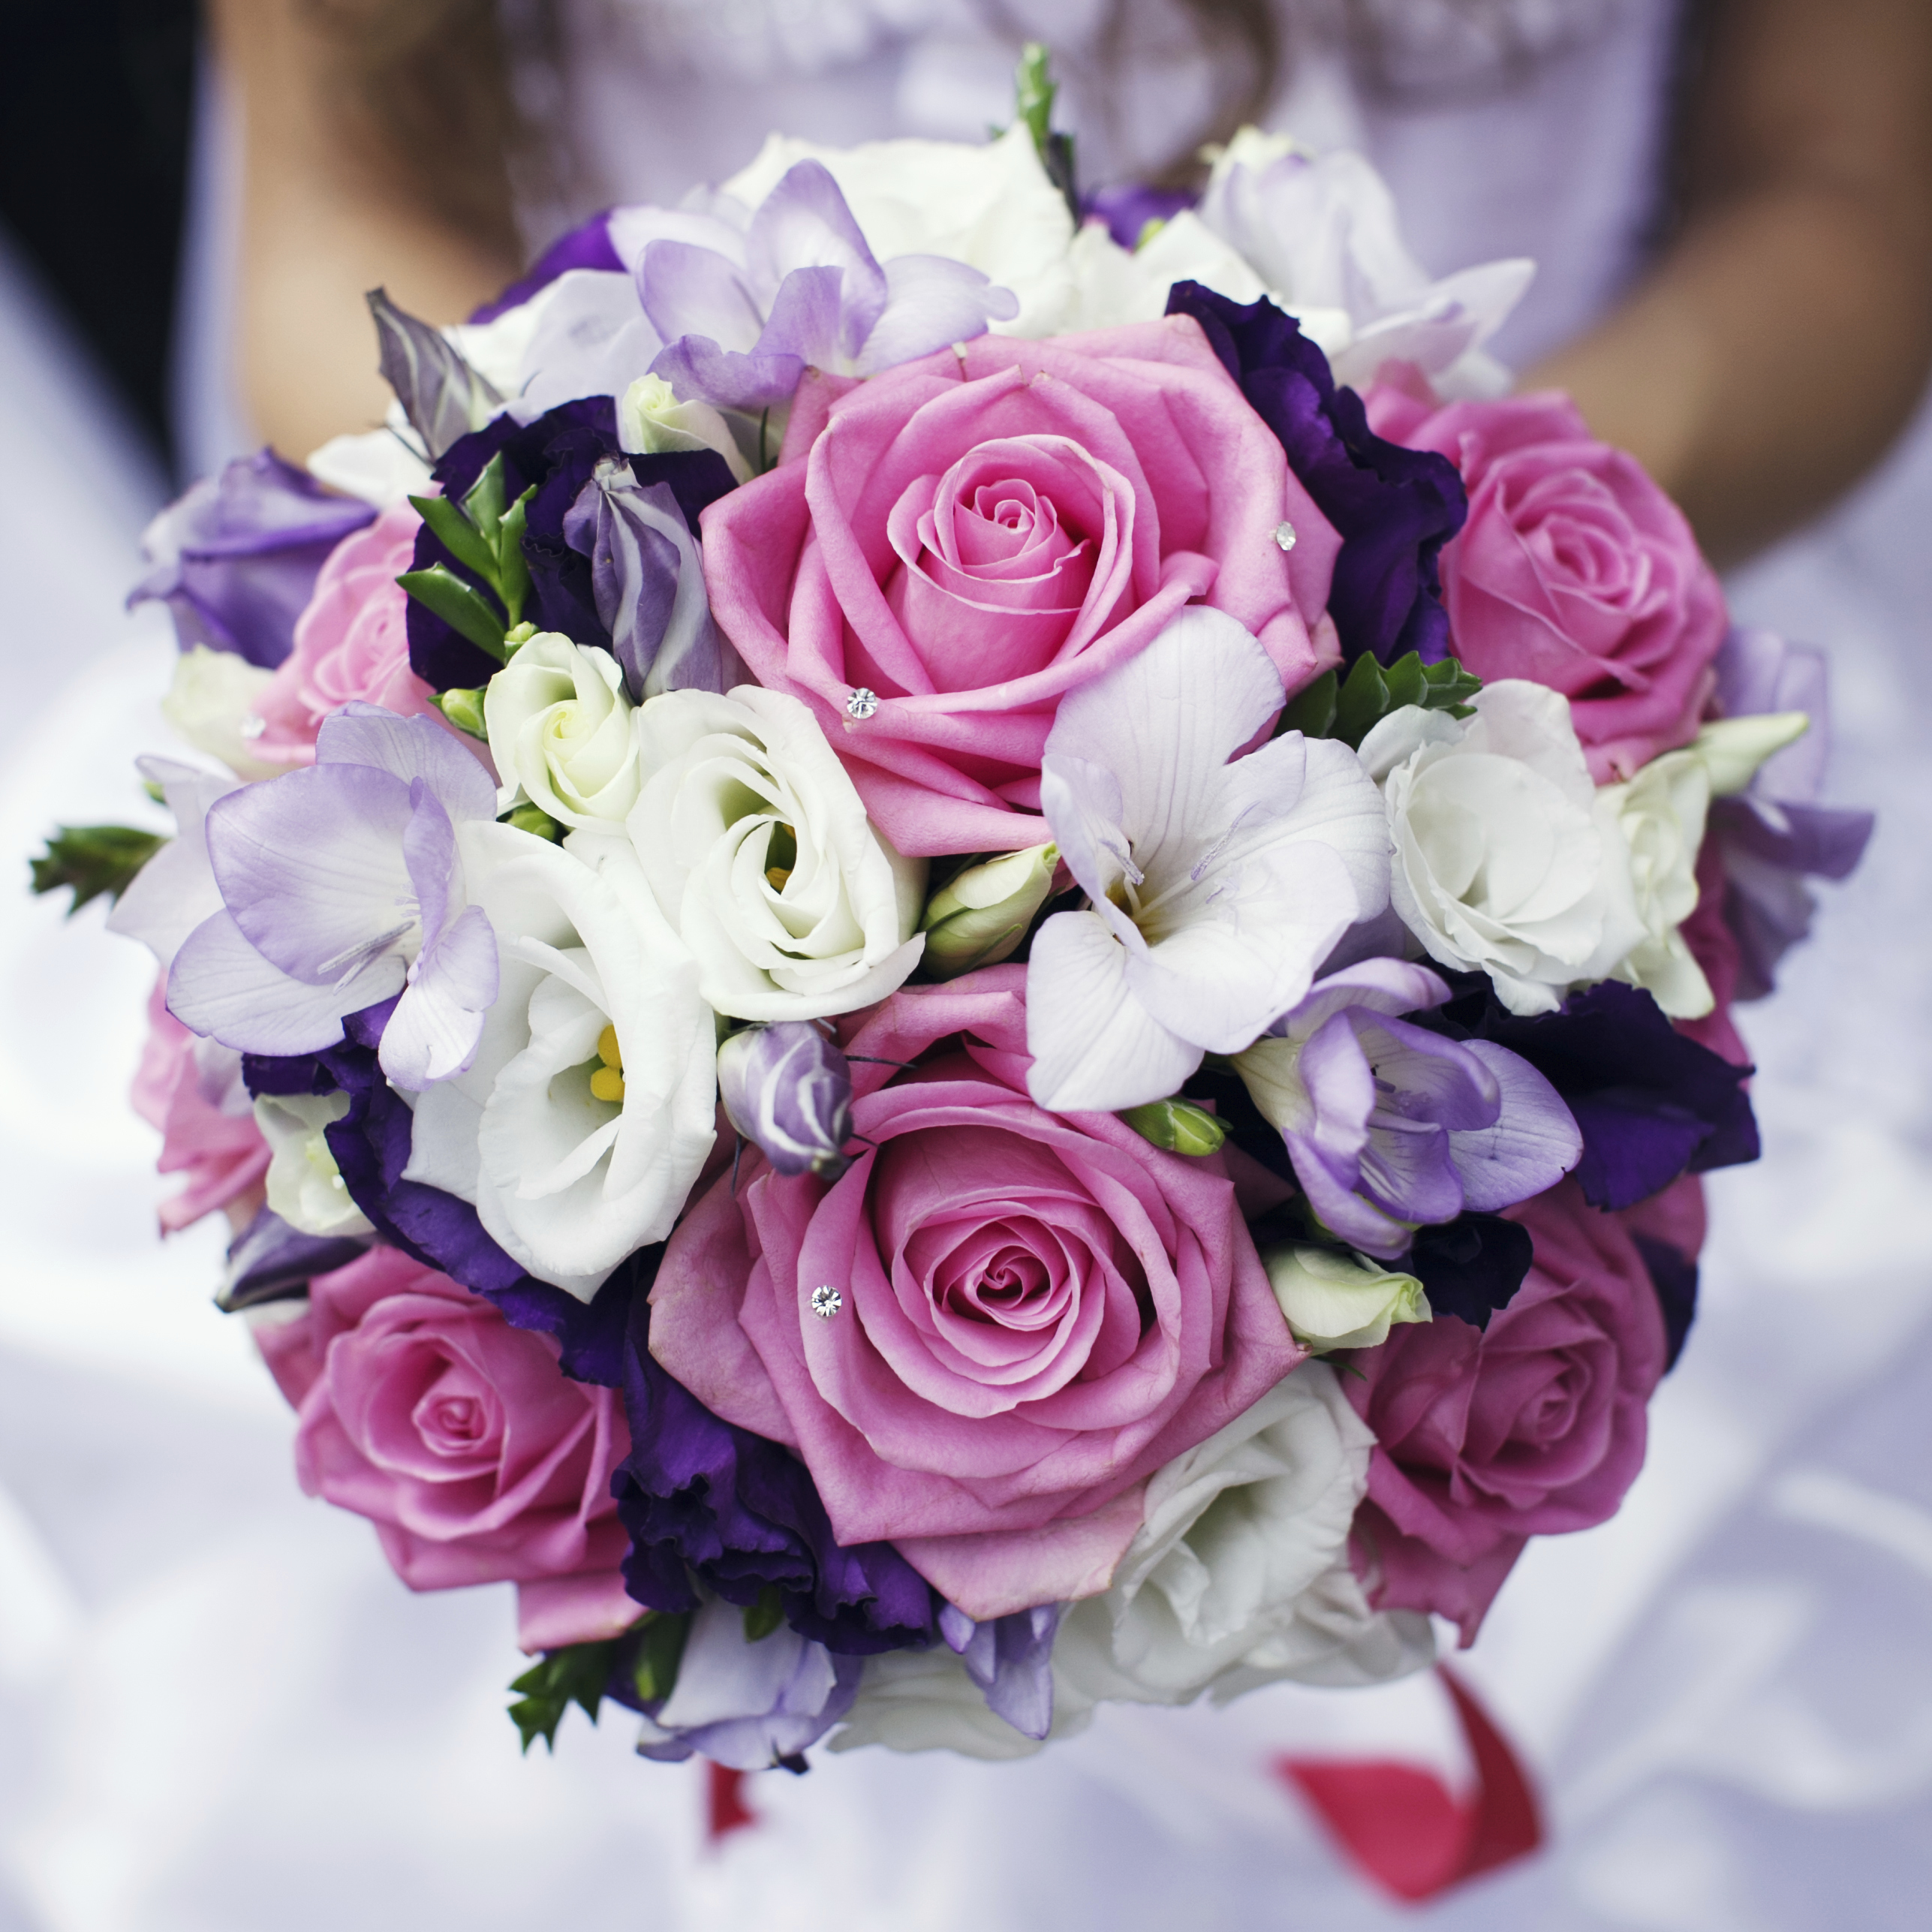 Wedding roses - Articles - Easy Weddings